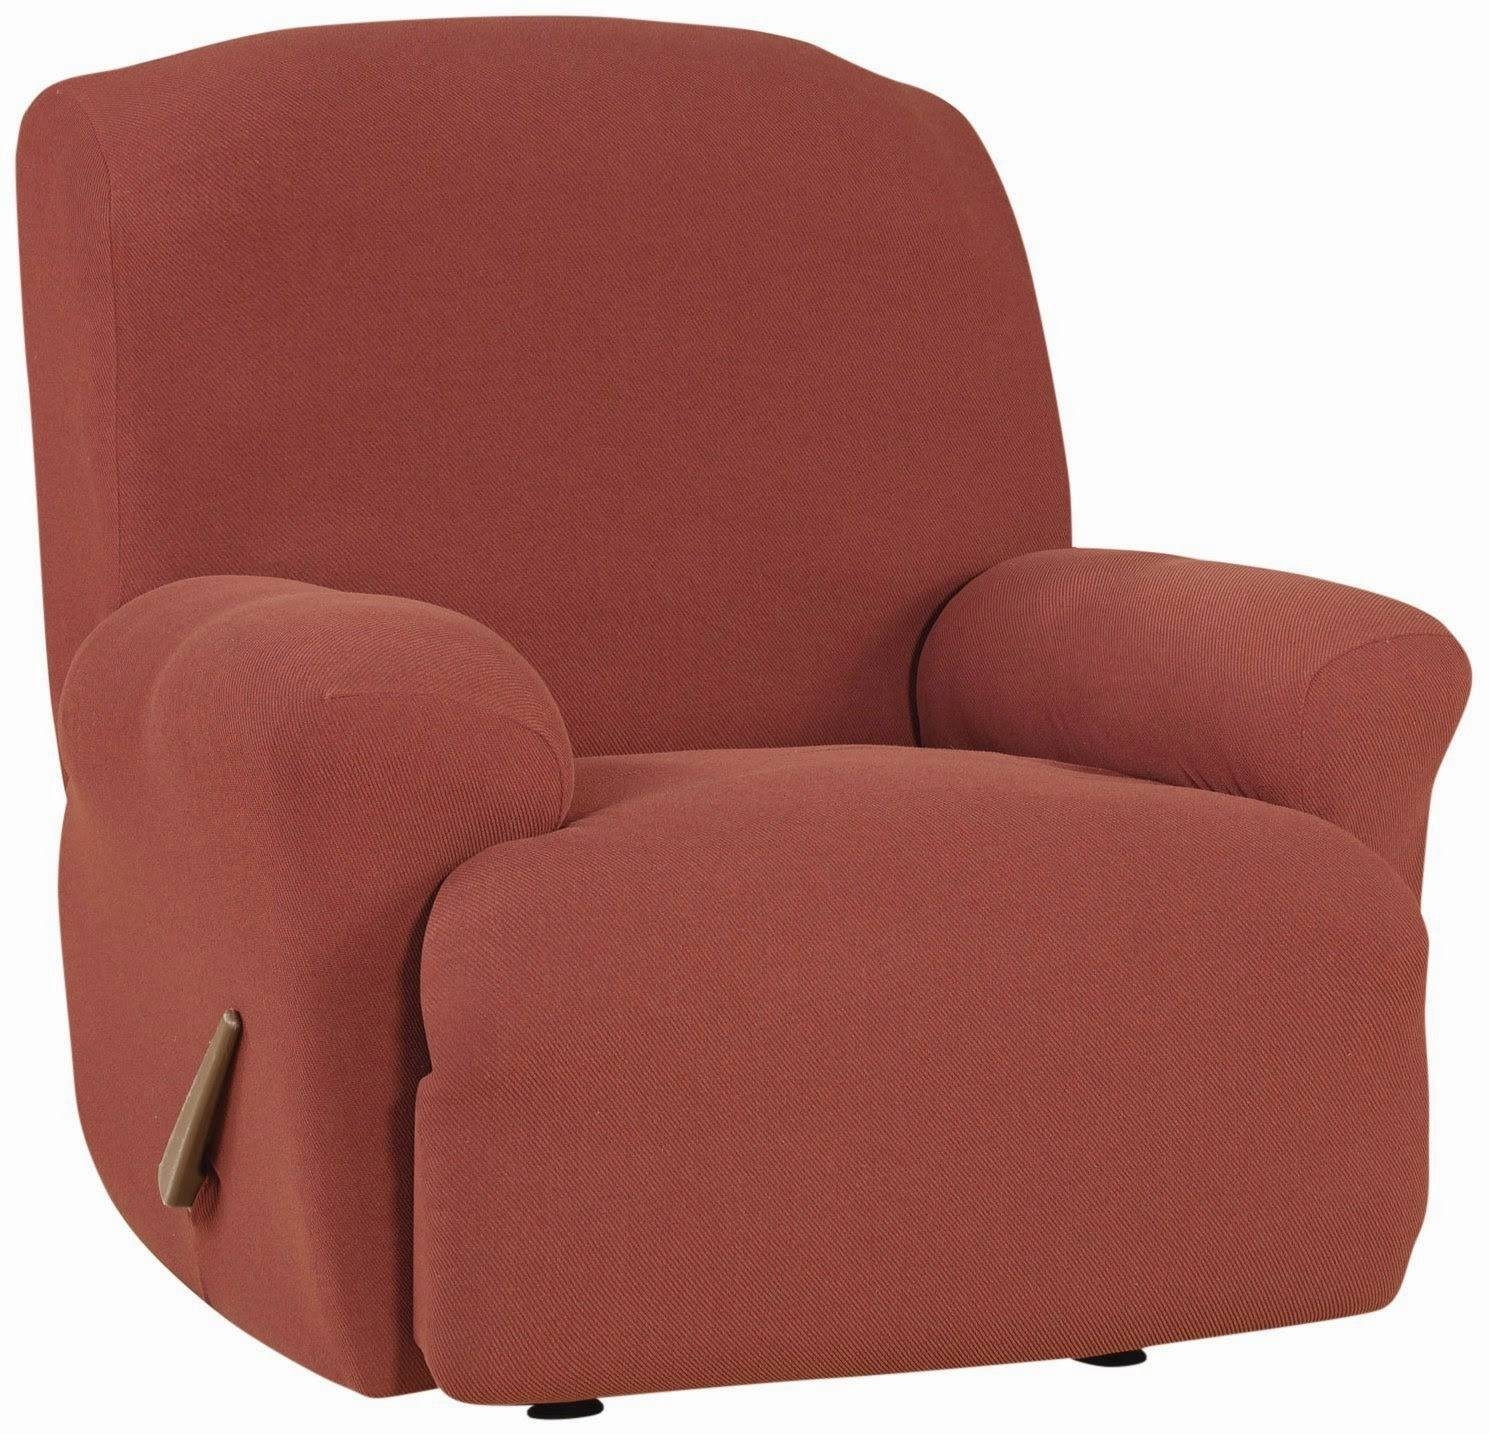 Sofa Recliner Sale: Recliner Sofa Slipcovers Walmart intended for Recliner Sofa Slipcovers (Image 8 of 15)